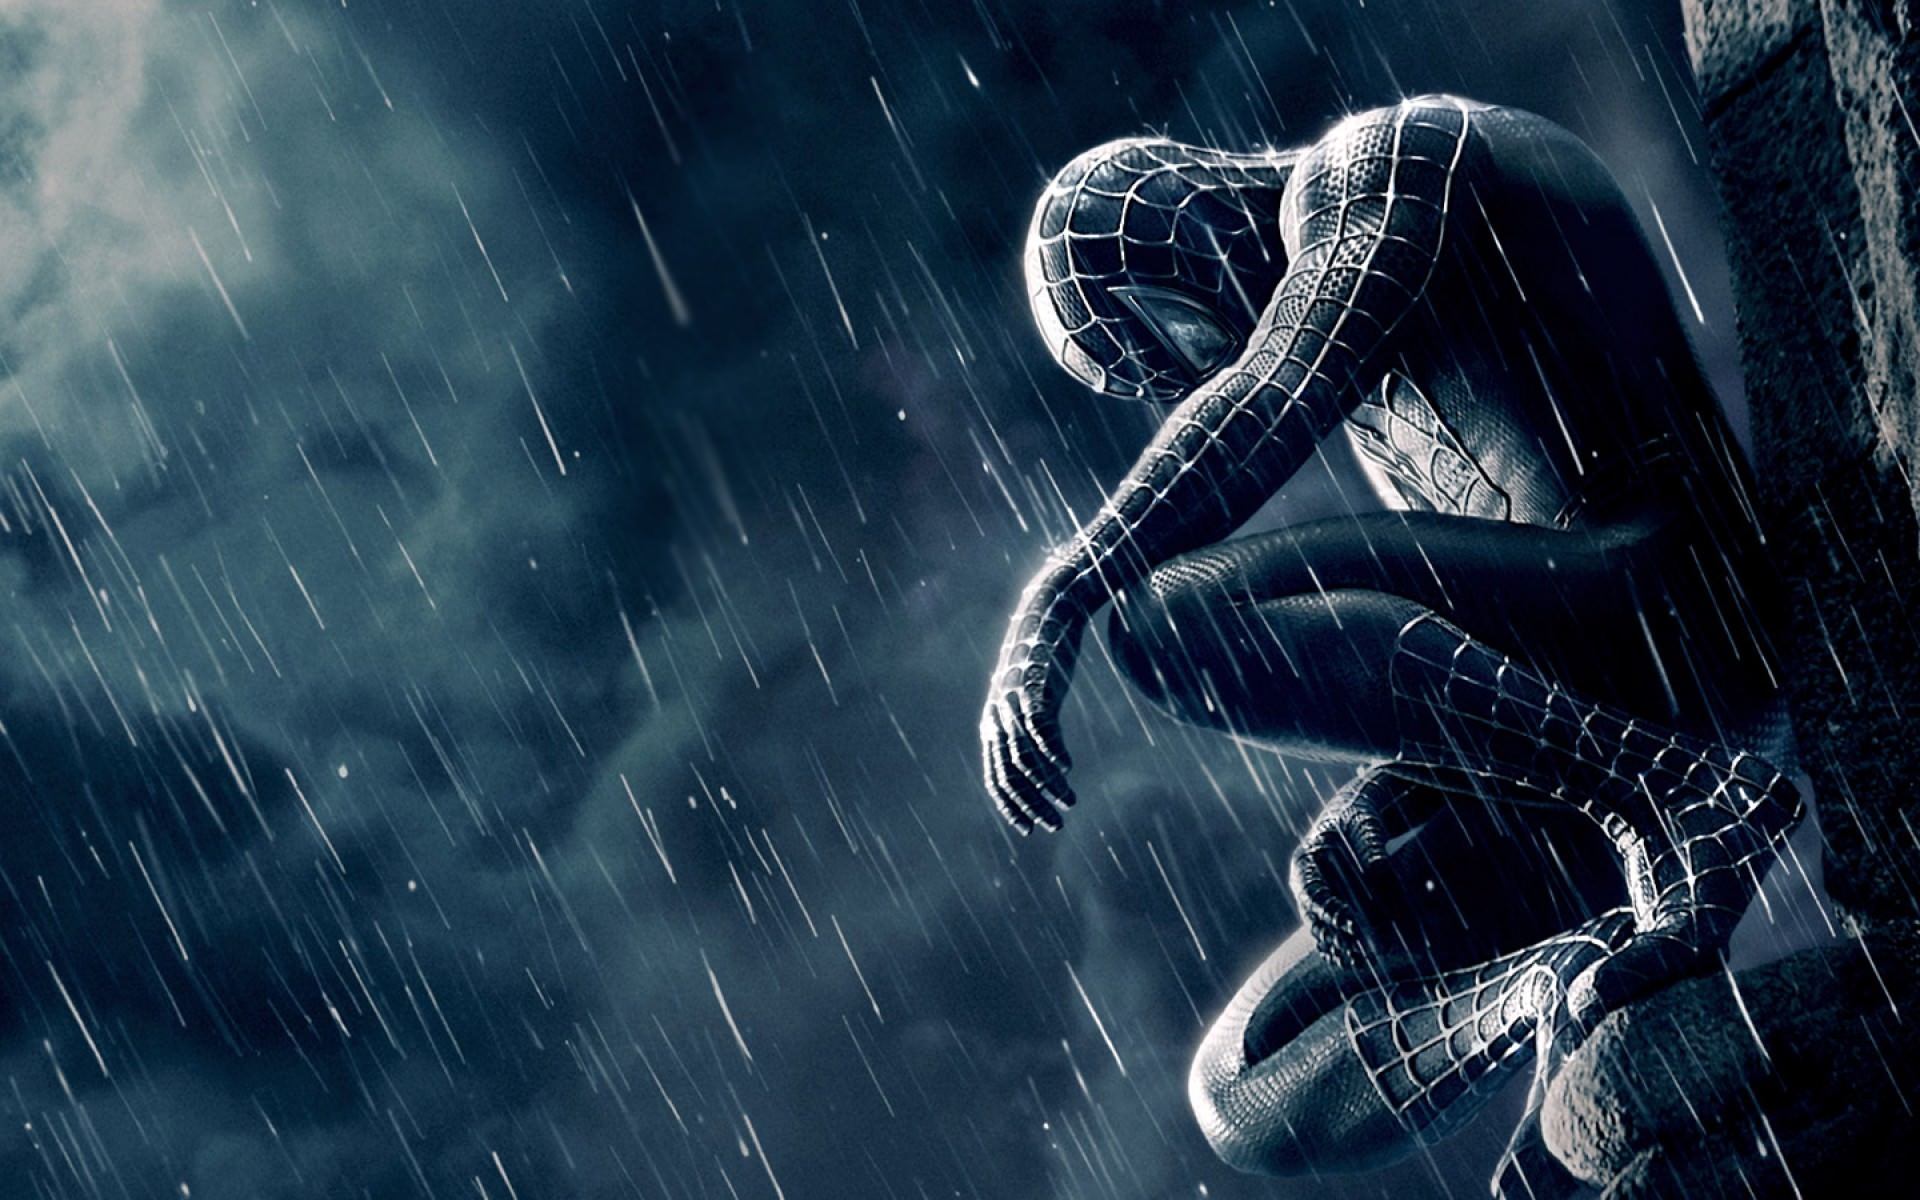 30 Spiderman Wallpapers Backgrounds Images FreeCreatives